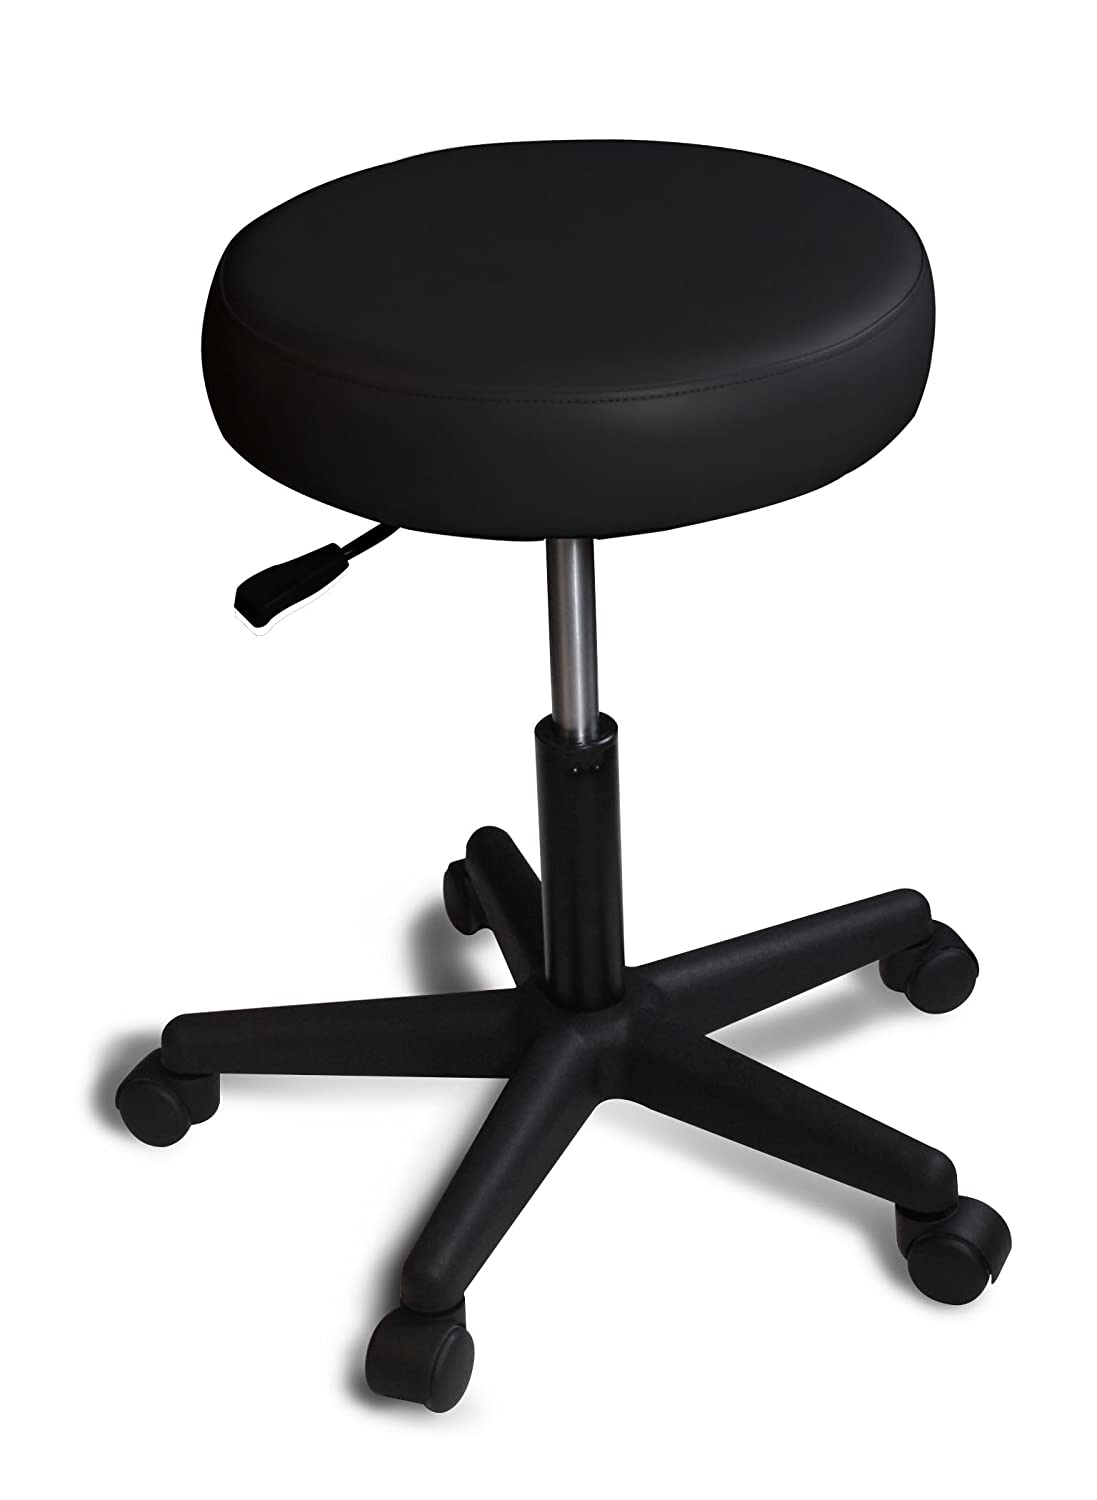 Surprising Spa Luxe Rolling Adjustable Swivel Stool Home Office And Beauty Black Machost Co Dining Chair Design Ideas Machostcouk